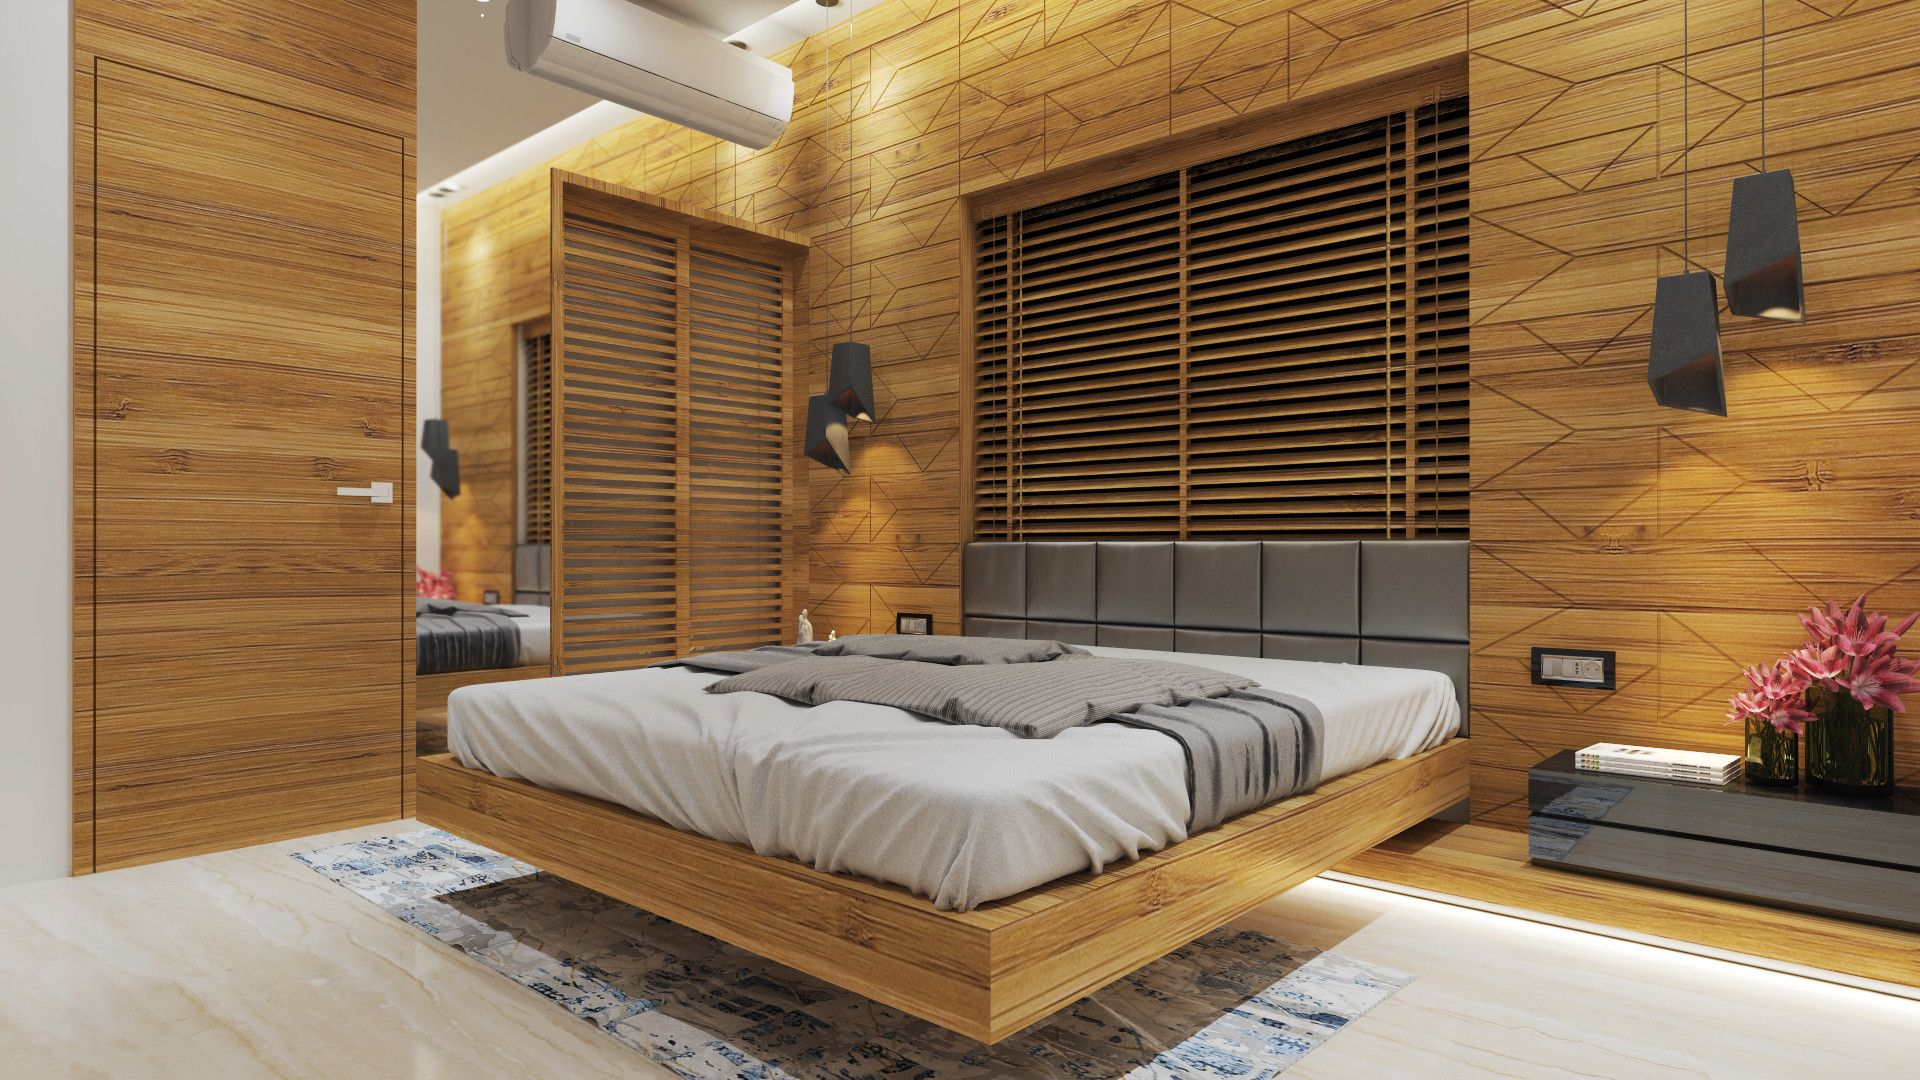 Wall Hung Bed With Upholstered Back Rest And Wooden